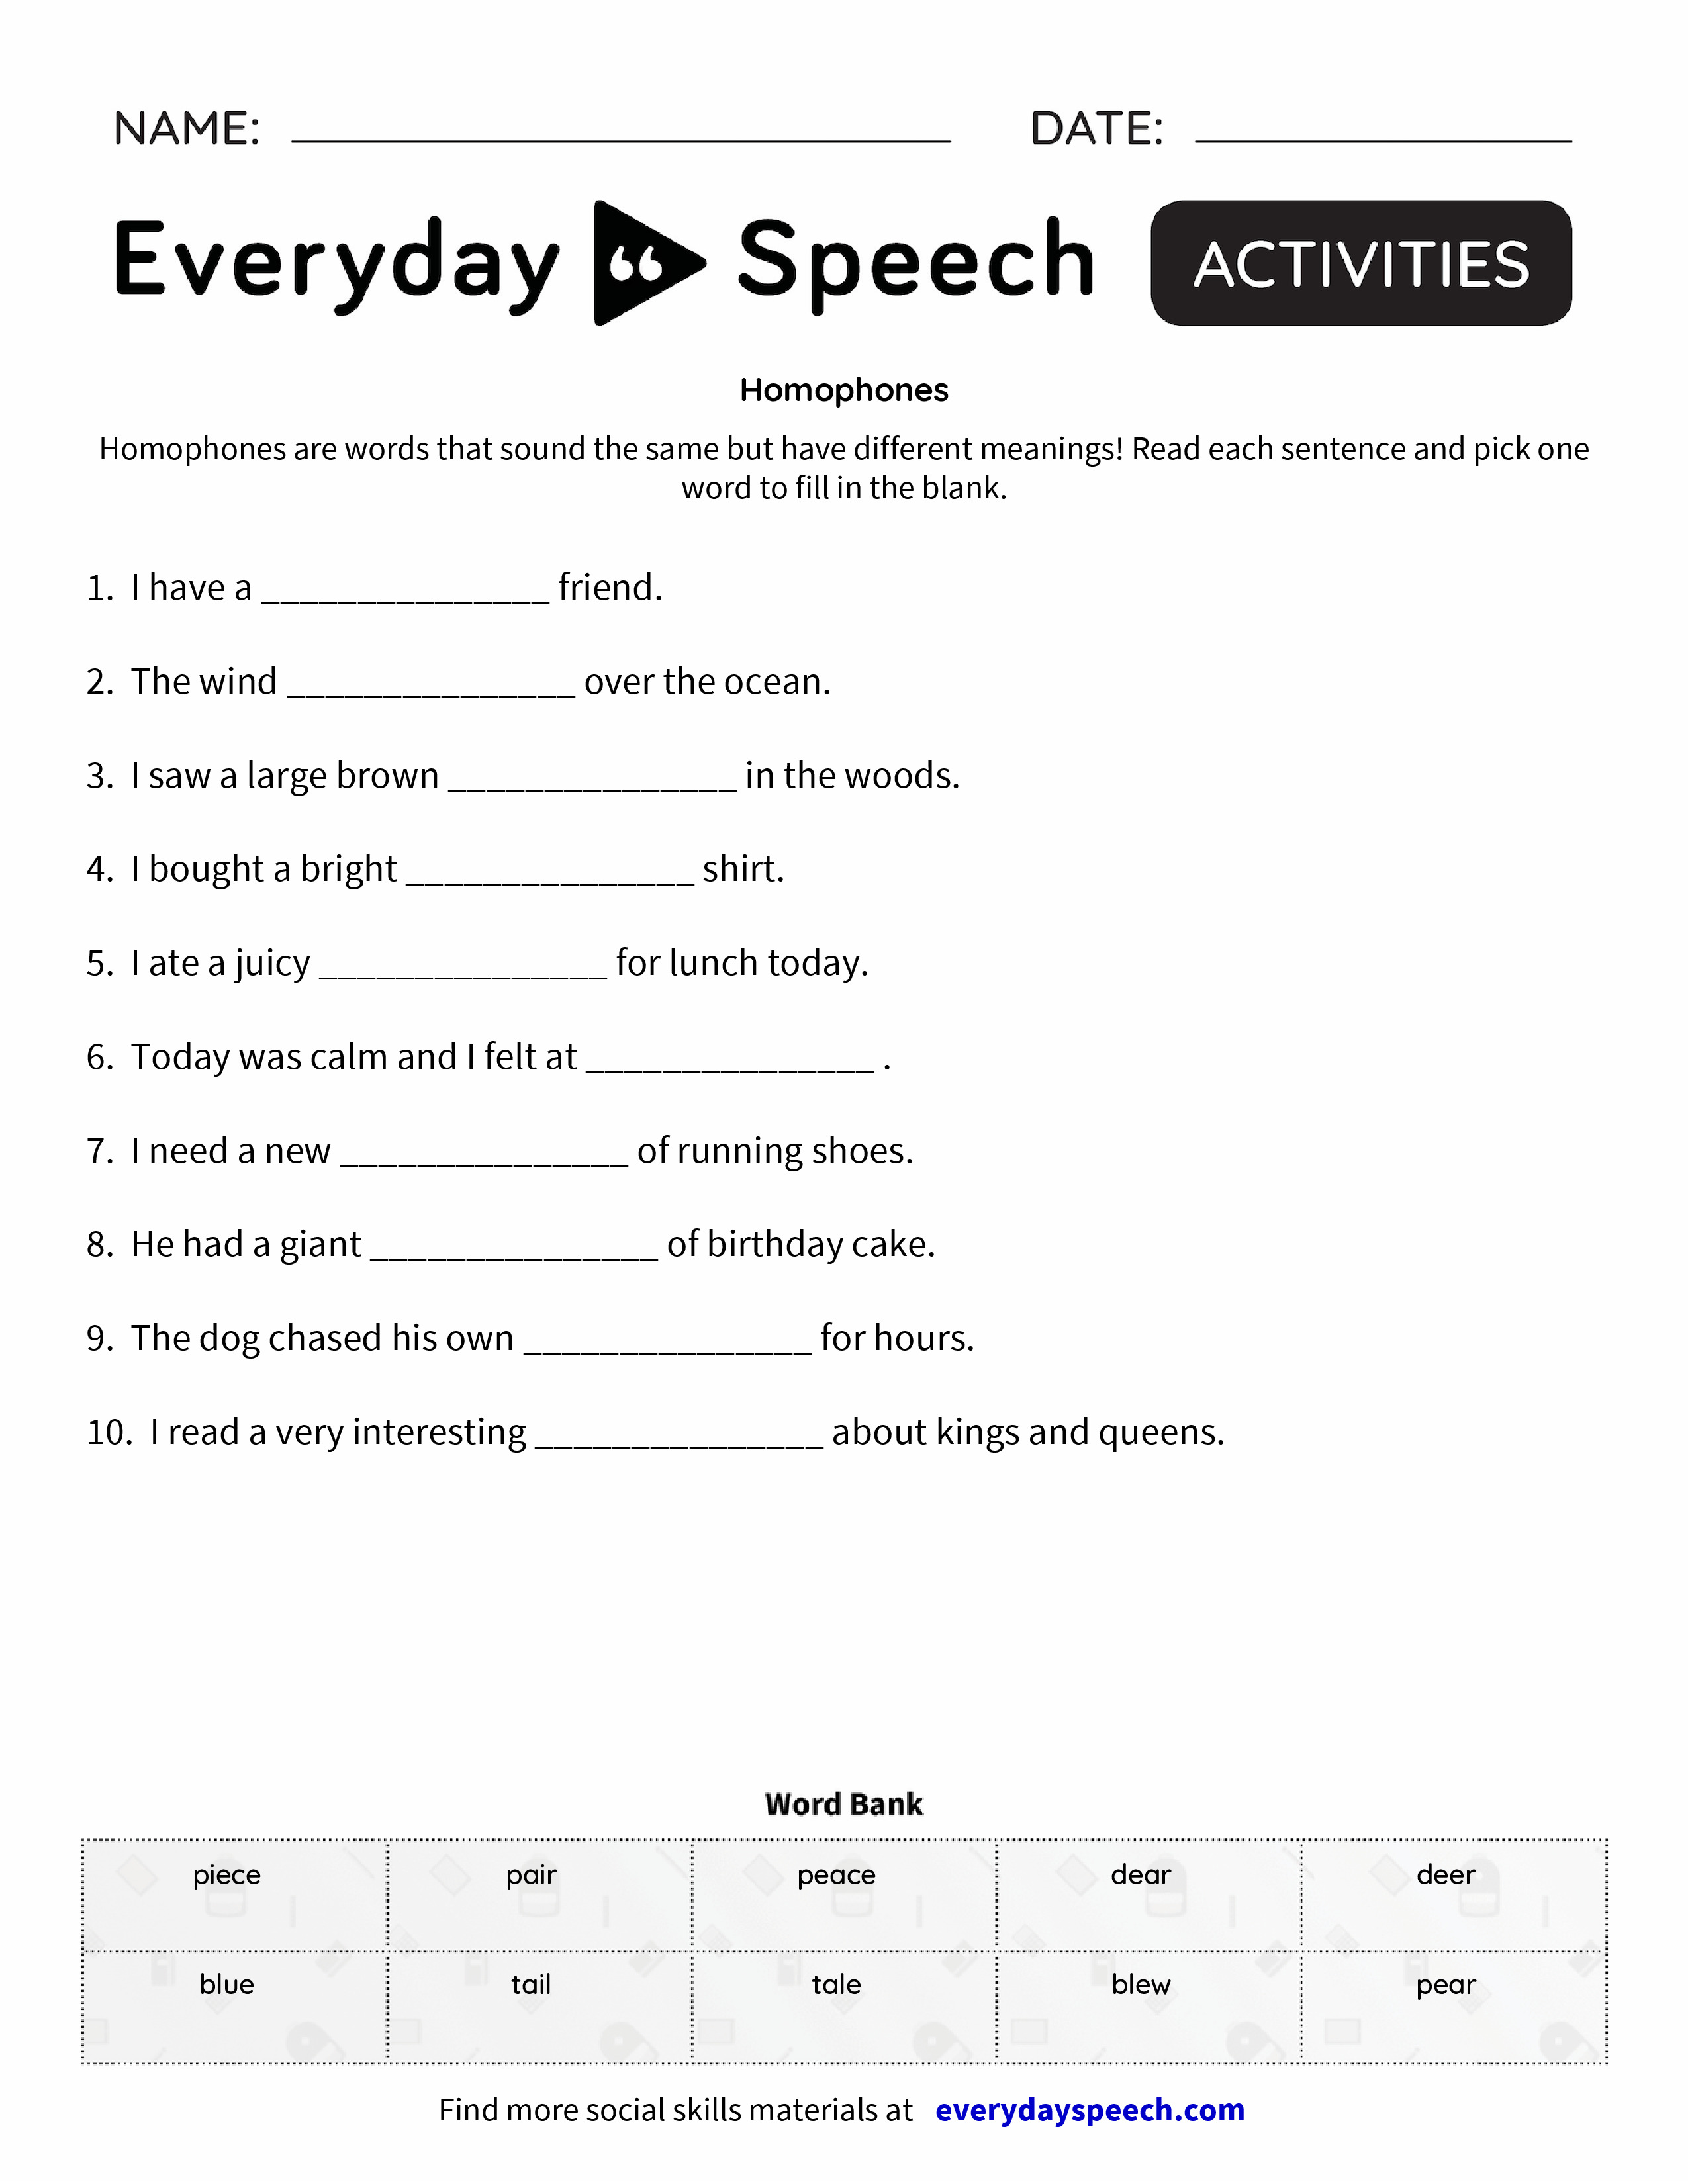 worksheet Homophones Worksheet Pdf Luizah Worksheet And Essay – Homophones Worksheet Pdf